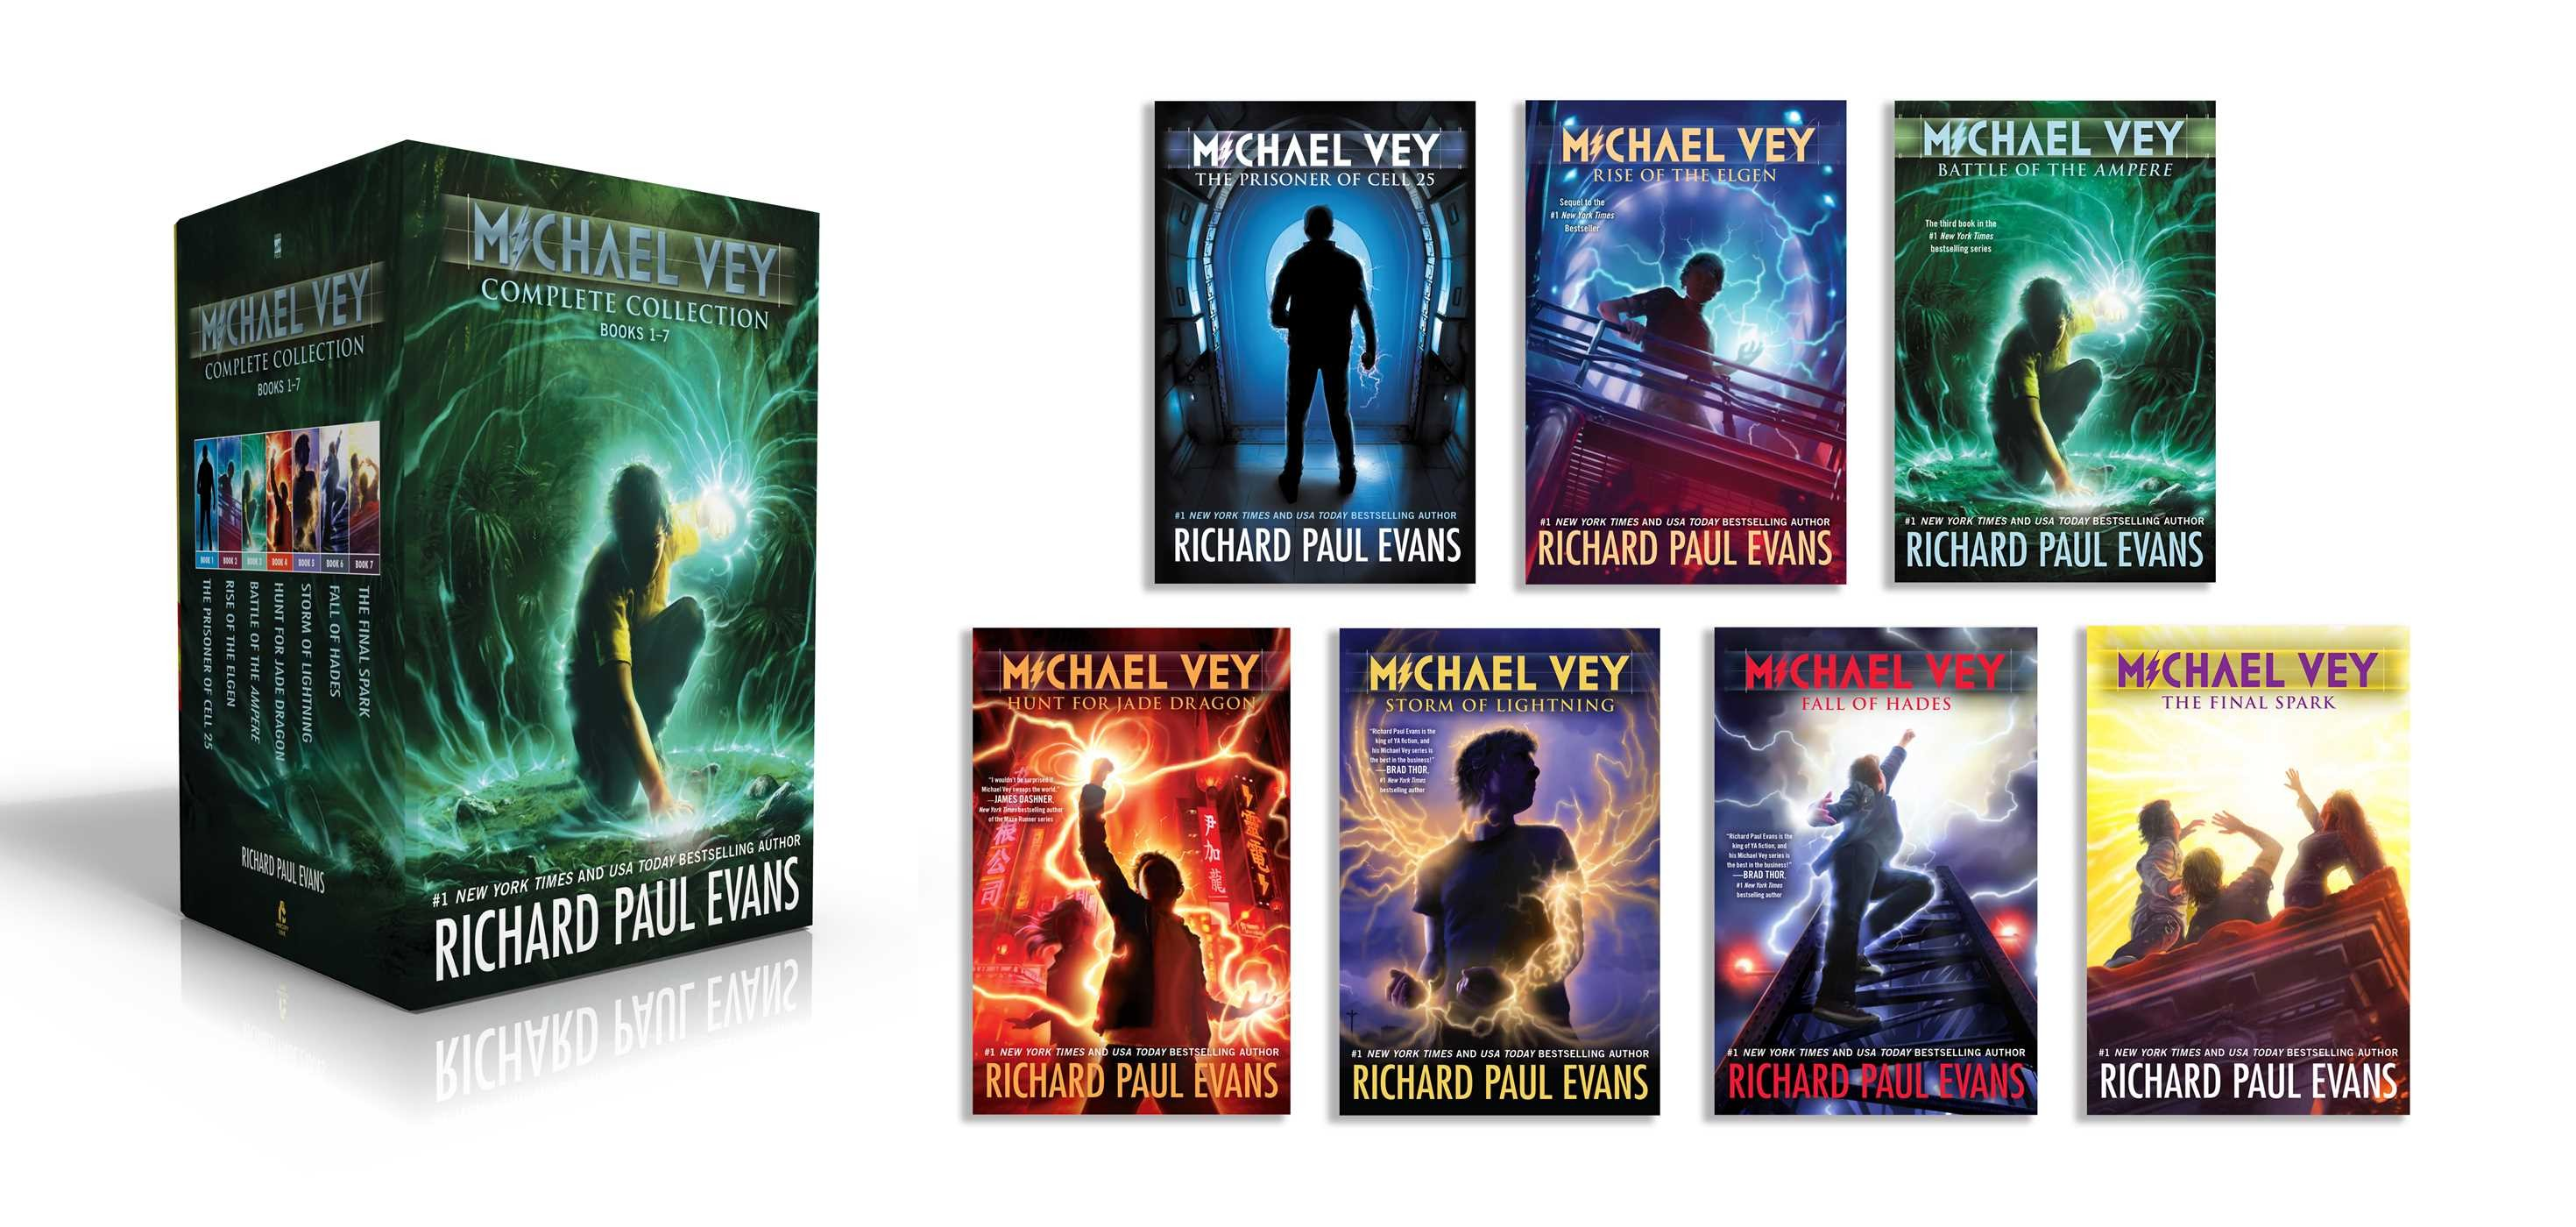 a literary analysis of michael vey the battle of the ampere by richard paul evans Michael vey: battle of the ampere by richard paul evans posted by josh olds on oct 24, 2013 in uncategorized genre: young adult publisher: simon pulse/mercury ink publication date: sept 17, 2013.